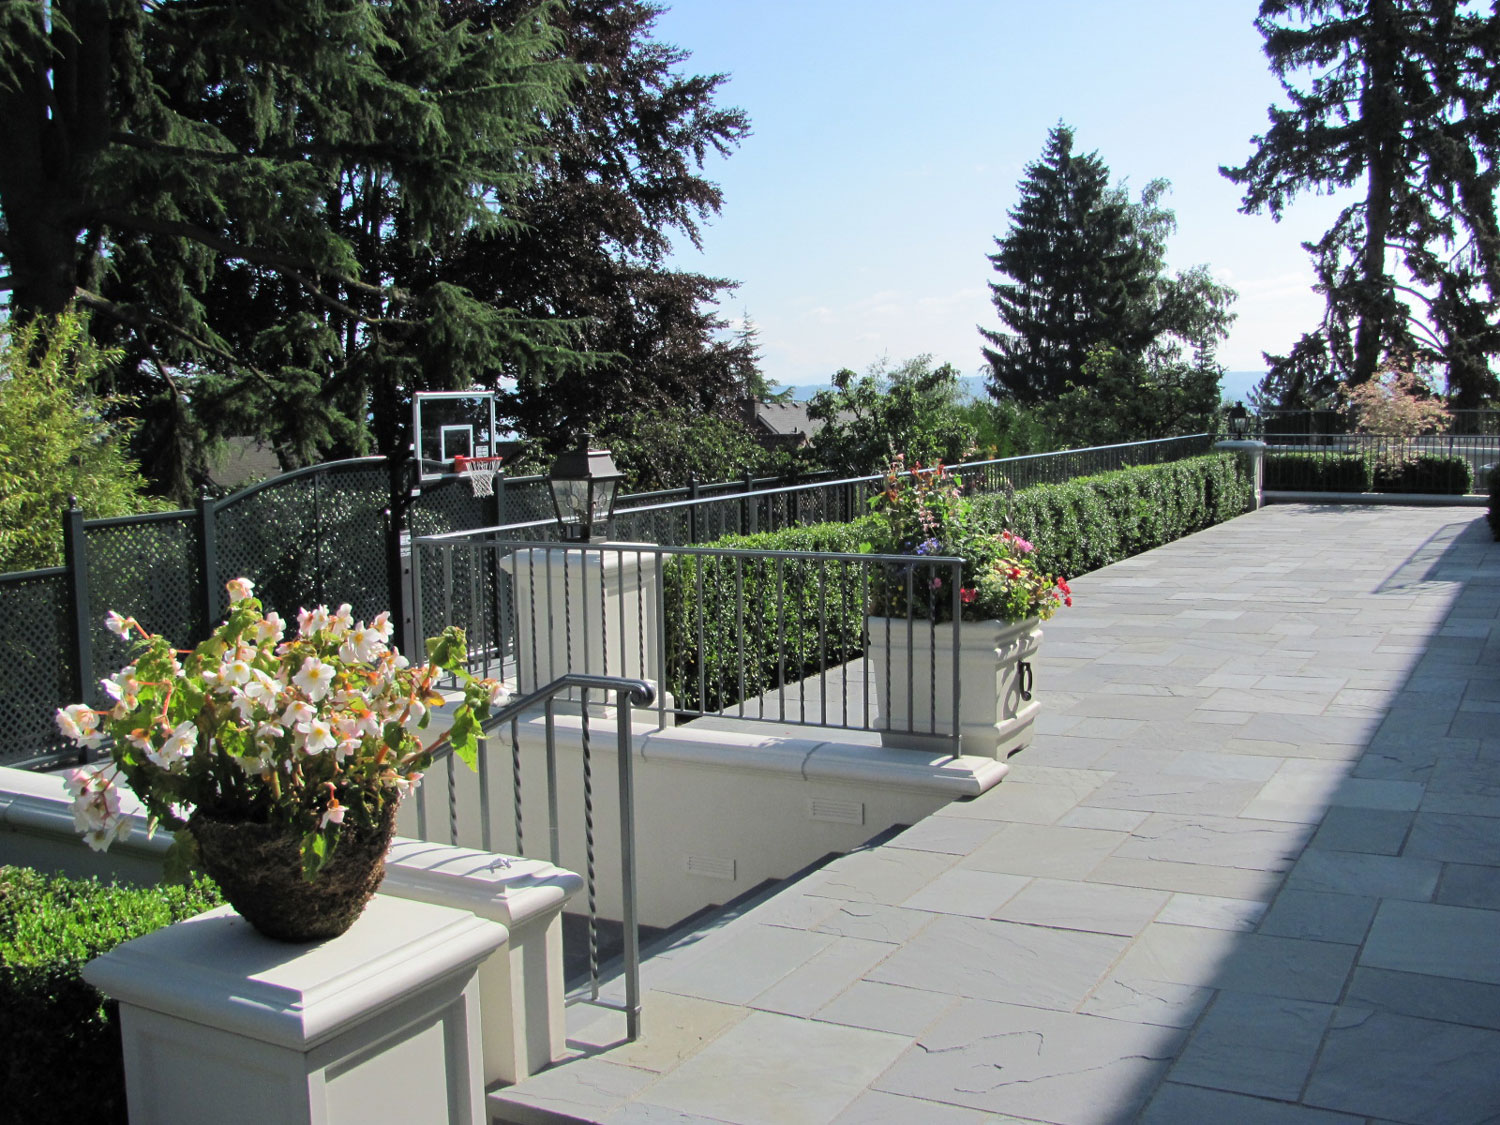 Iron Handrails and Guardrails for Slate Patio - Long View - Seattle, WA